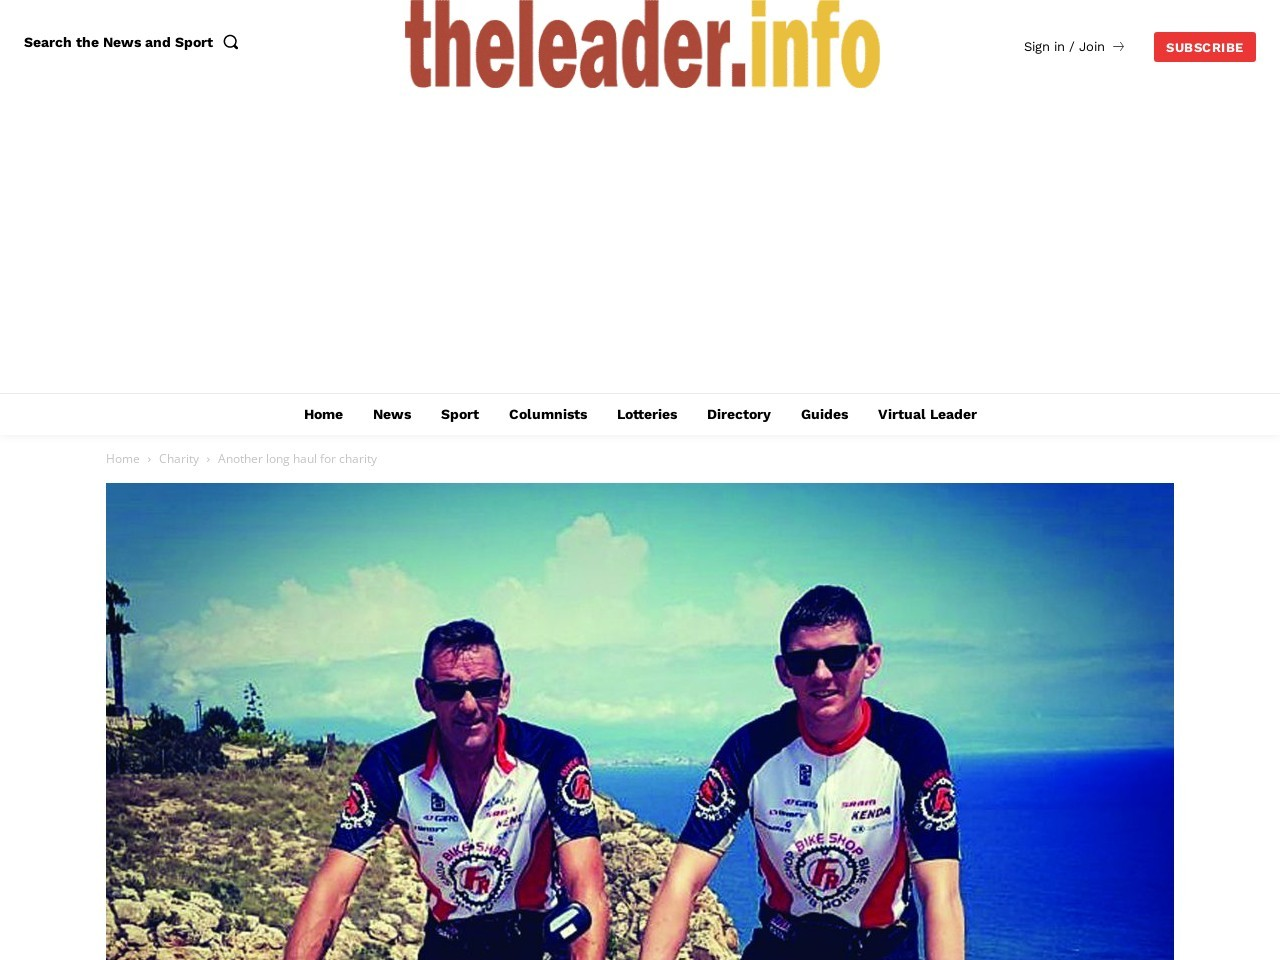 Another long haul for charity